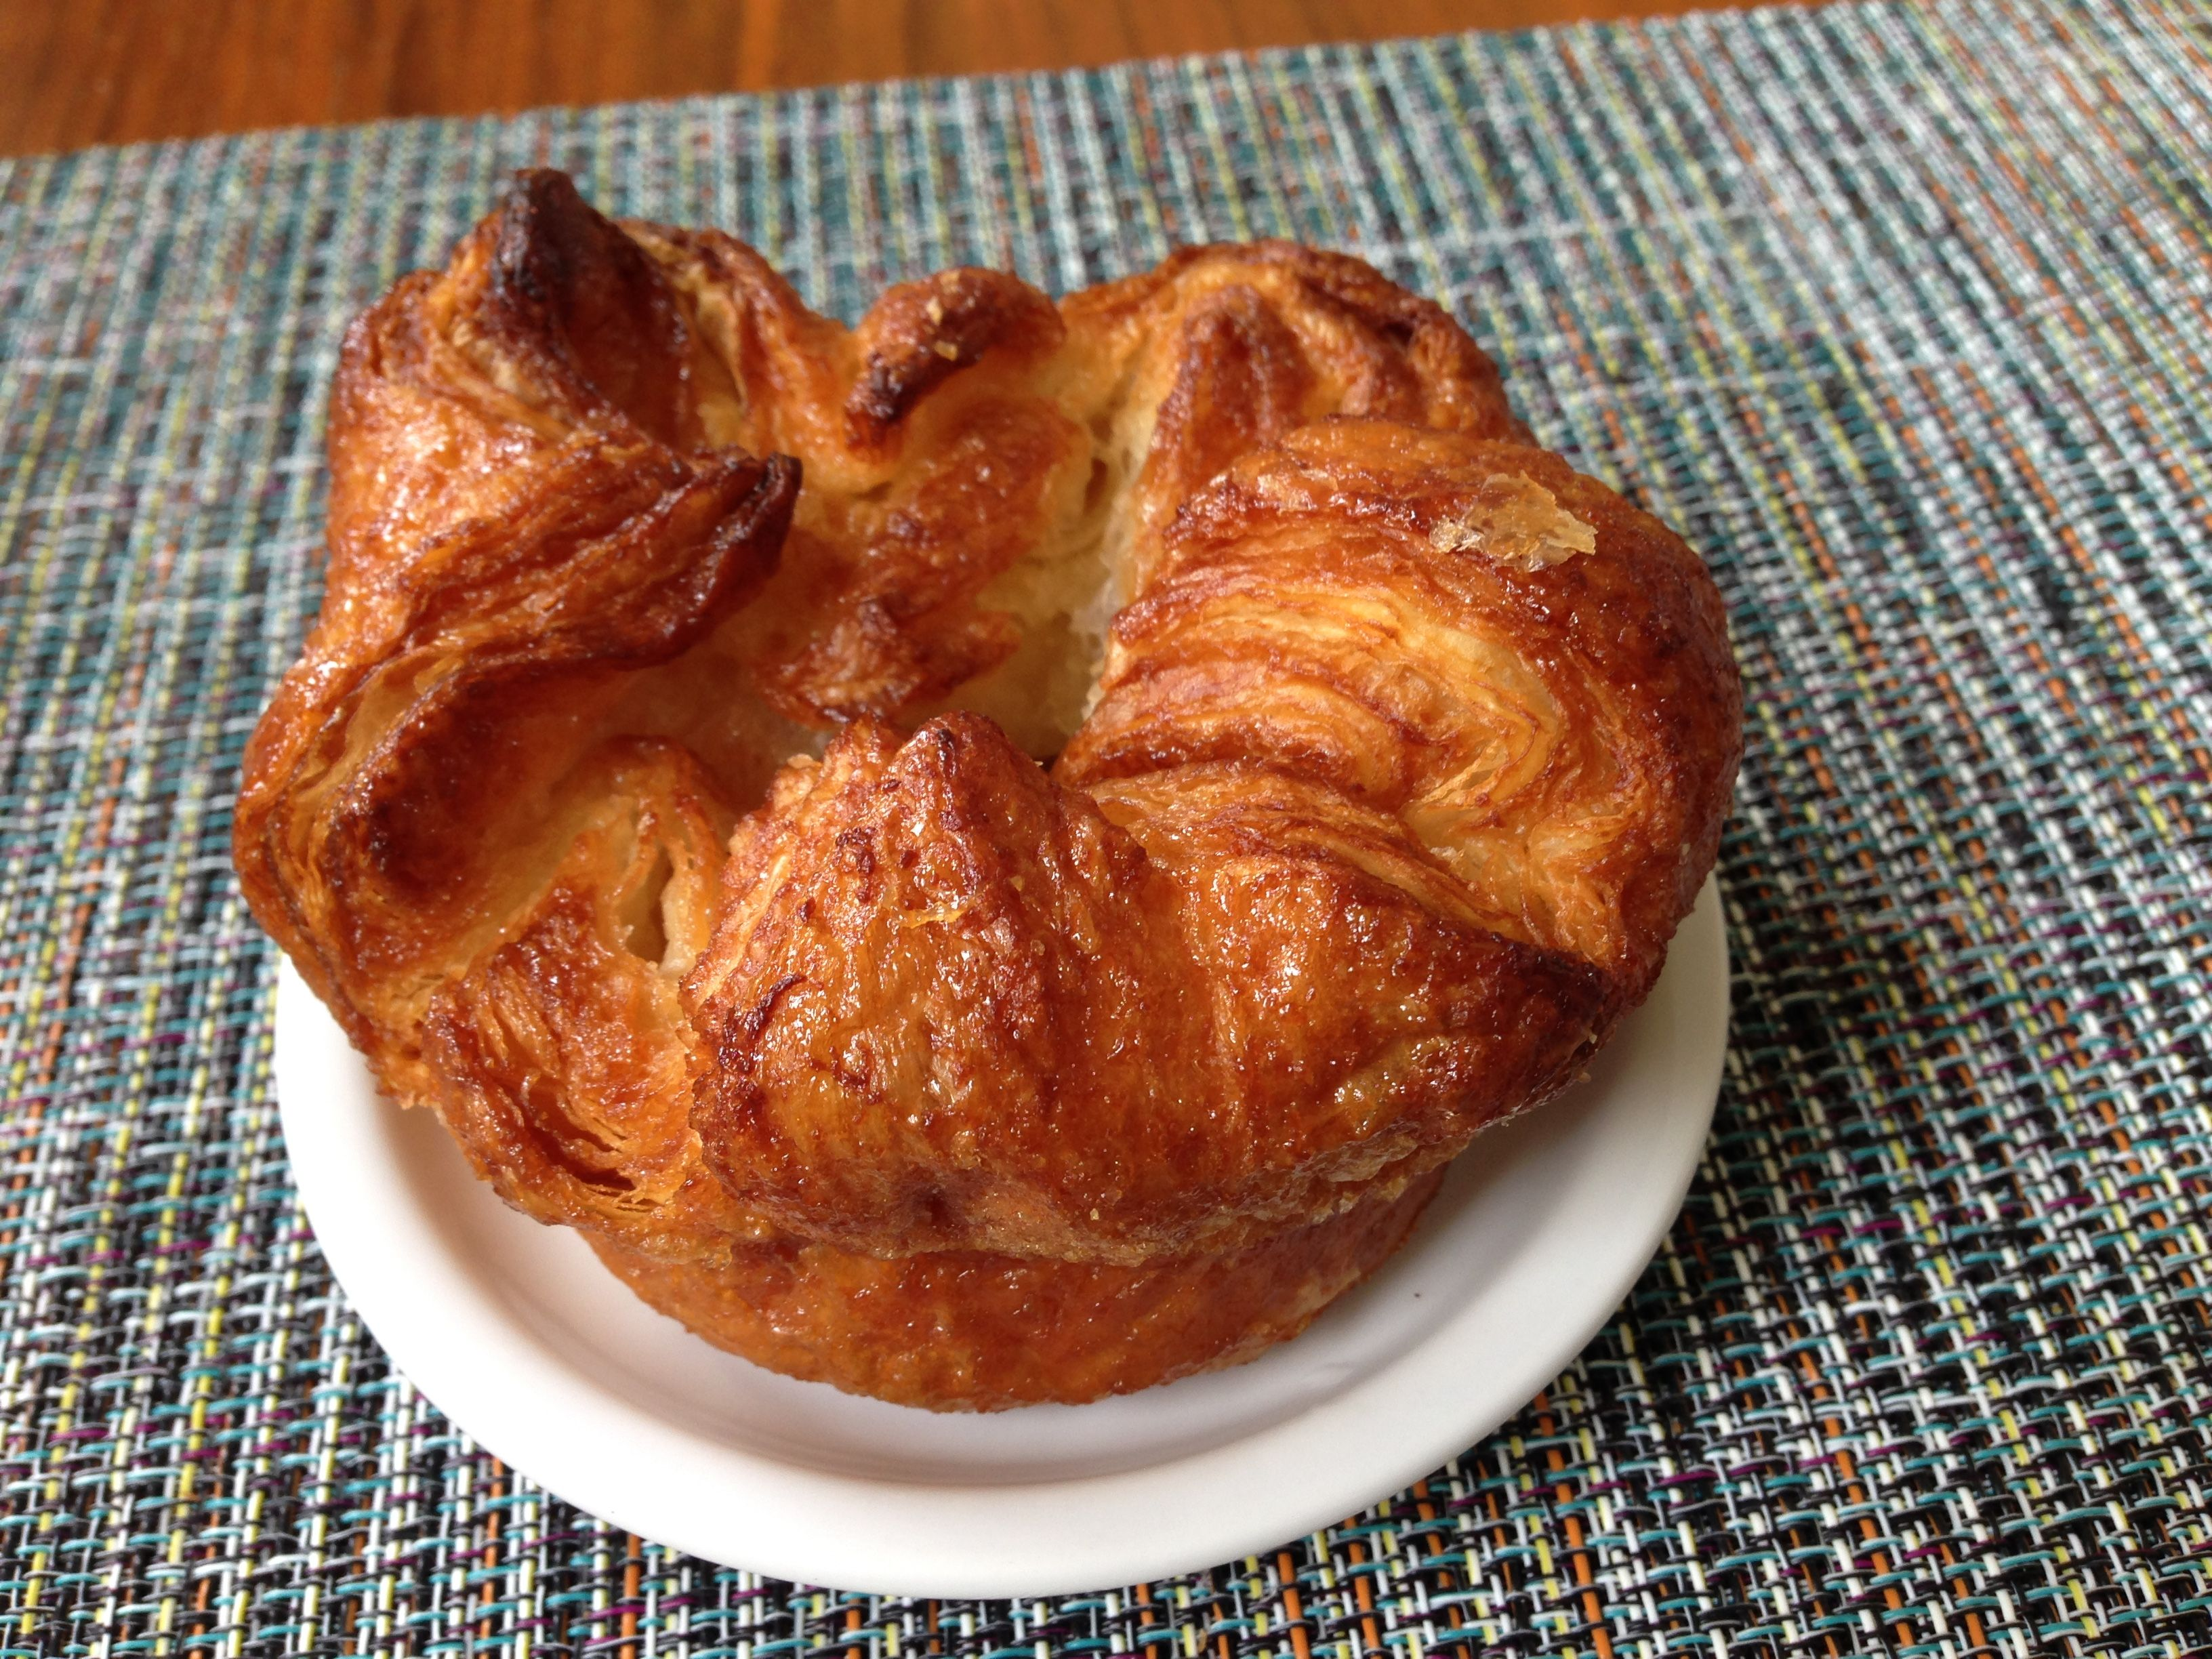 File:Kouign amann pastry from B. Patisserie in San Francisco.JPG ...